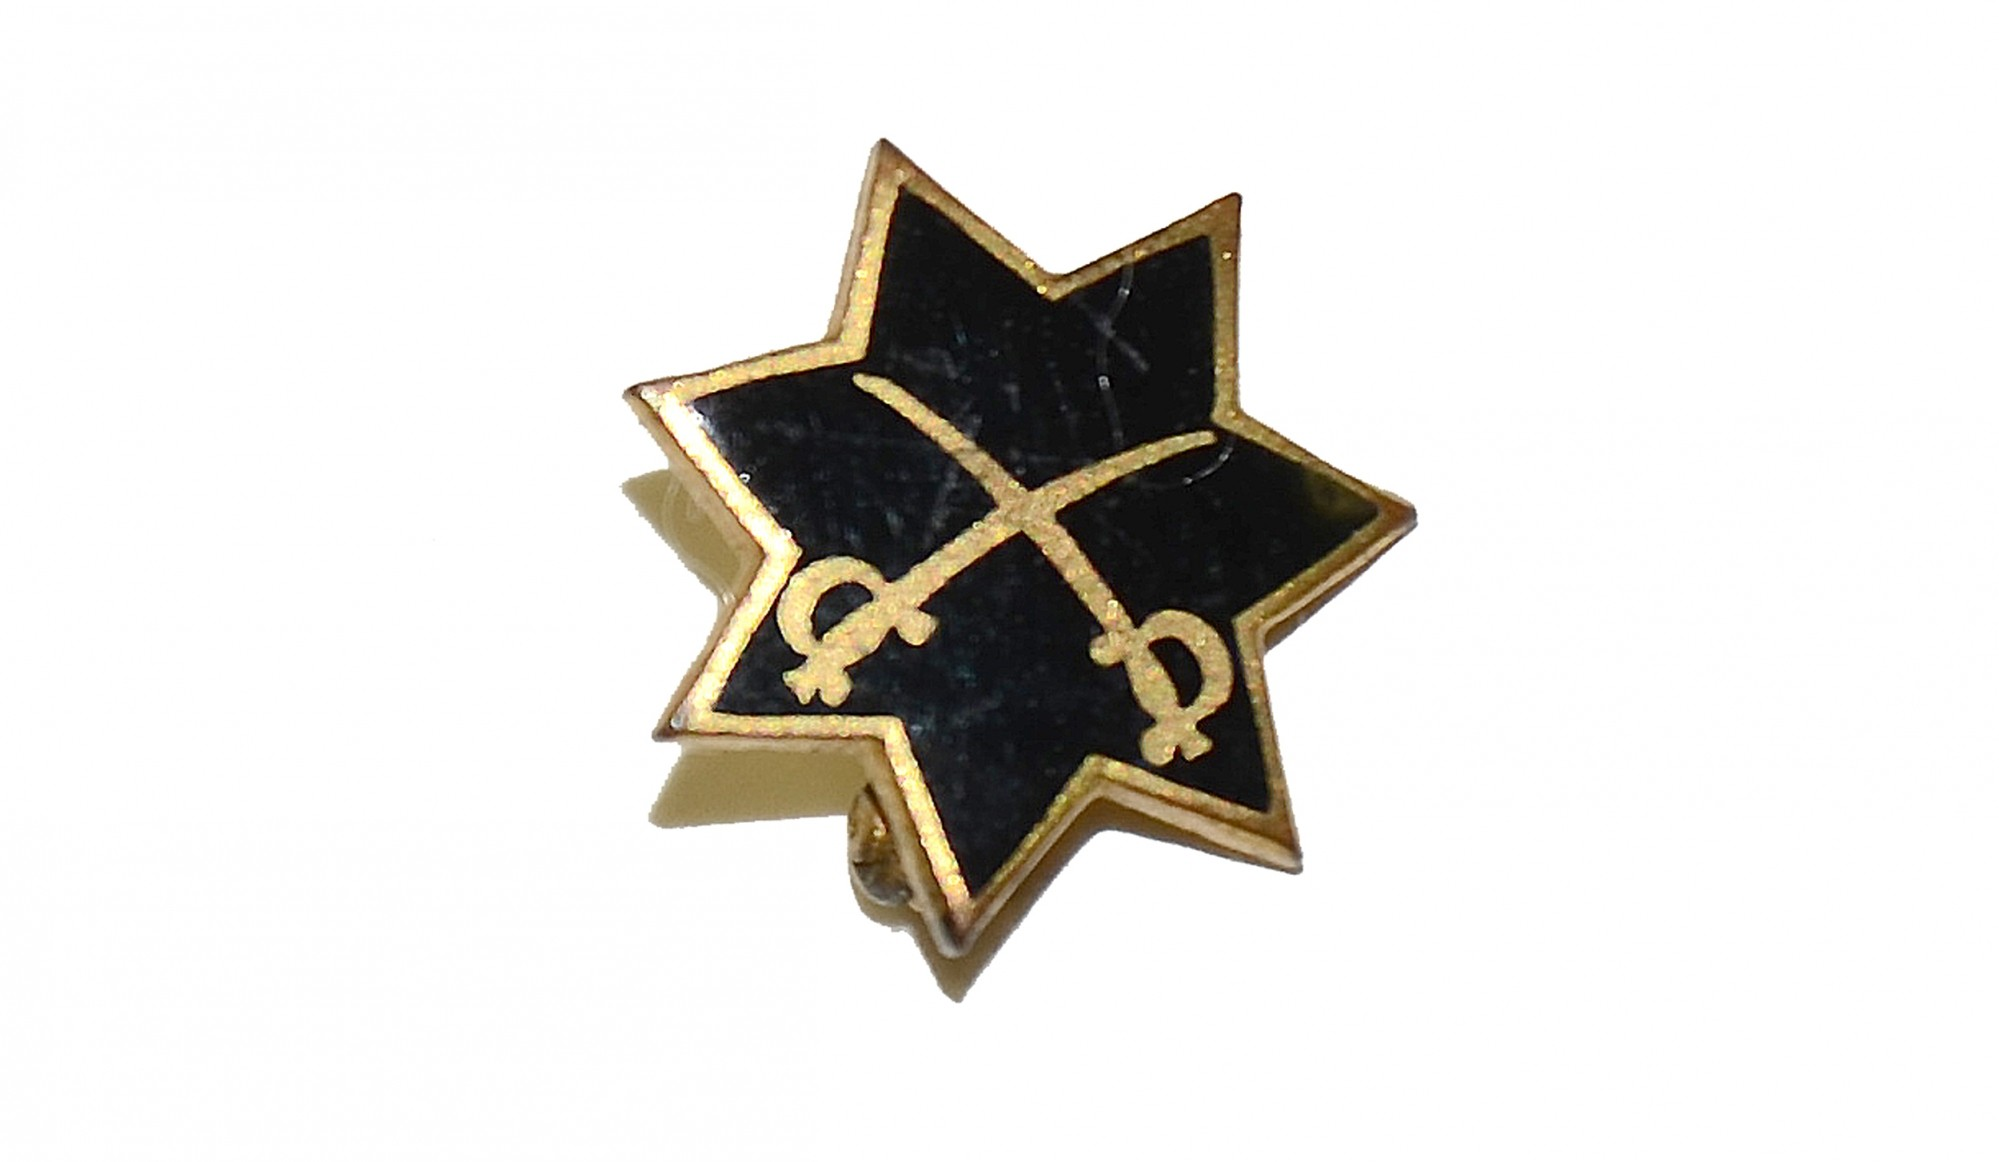 1ST DIVISION, 8TH CORPS PIN